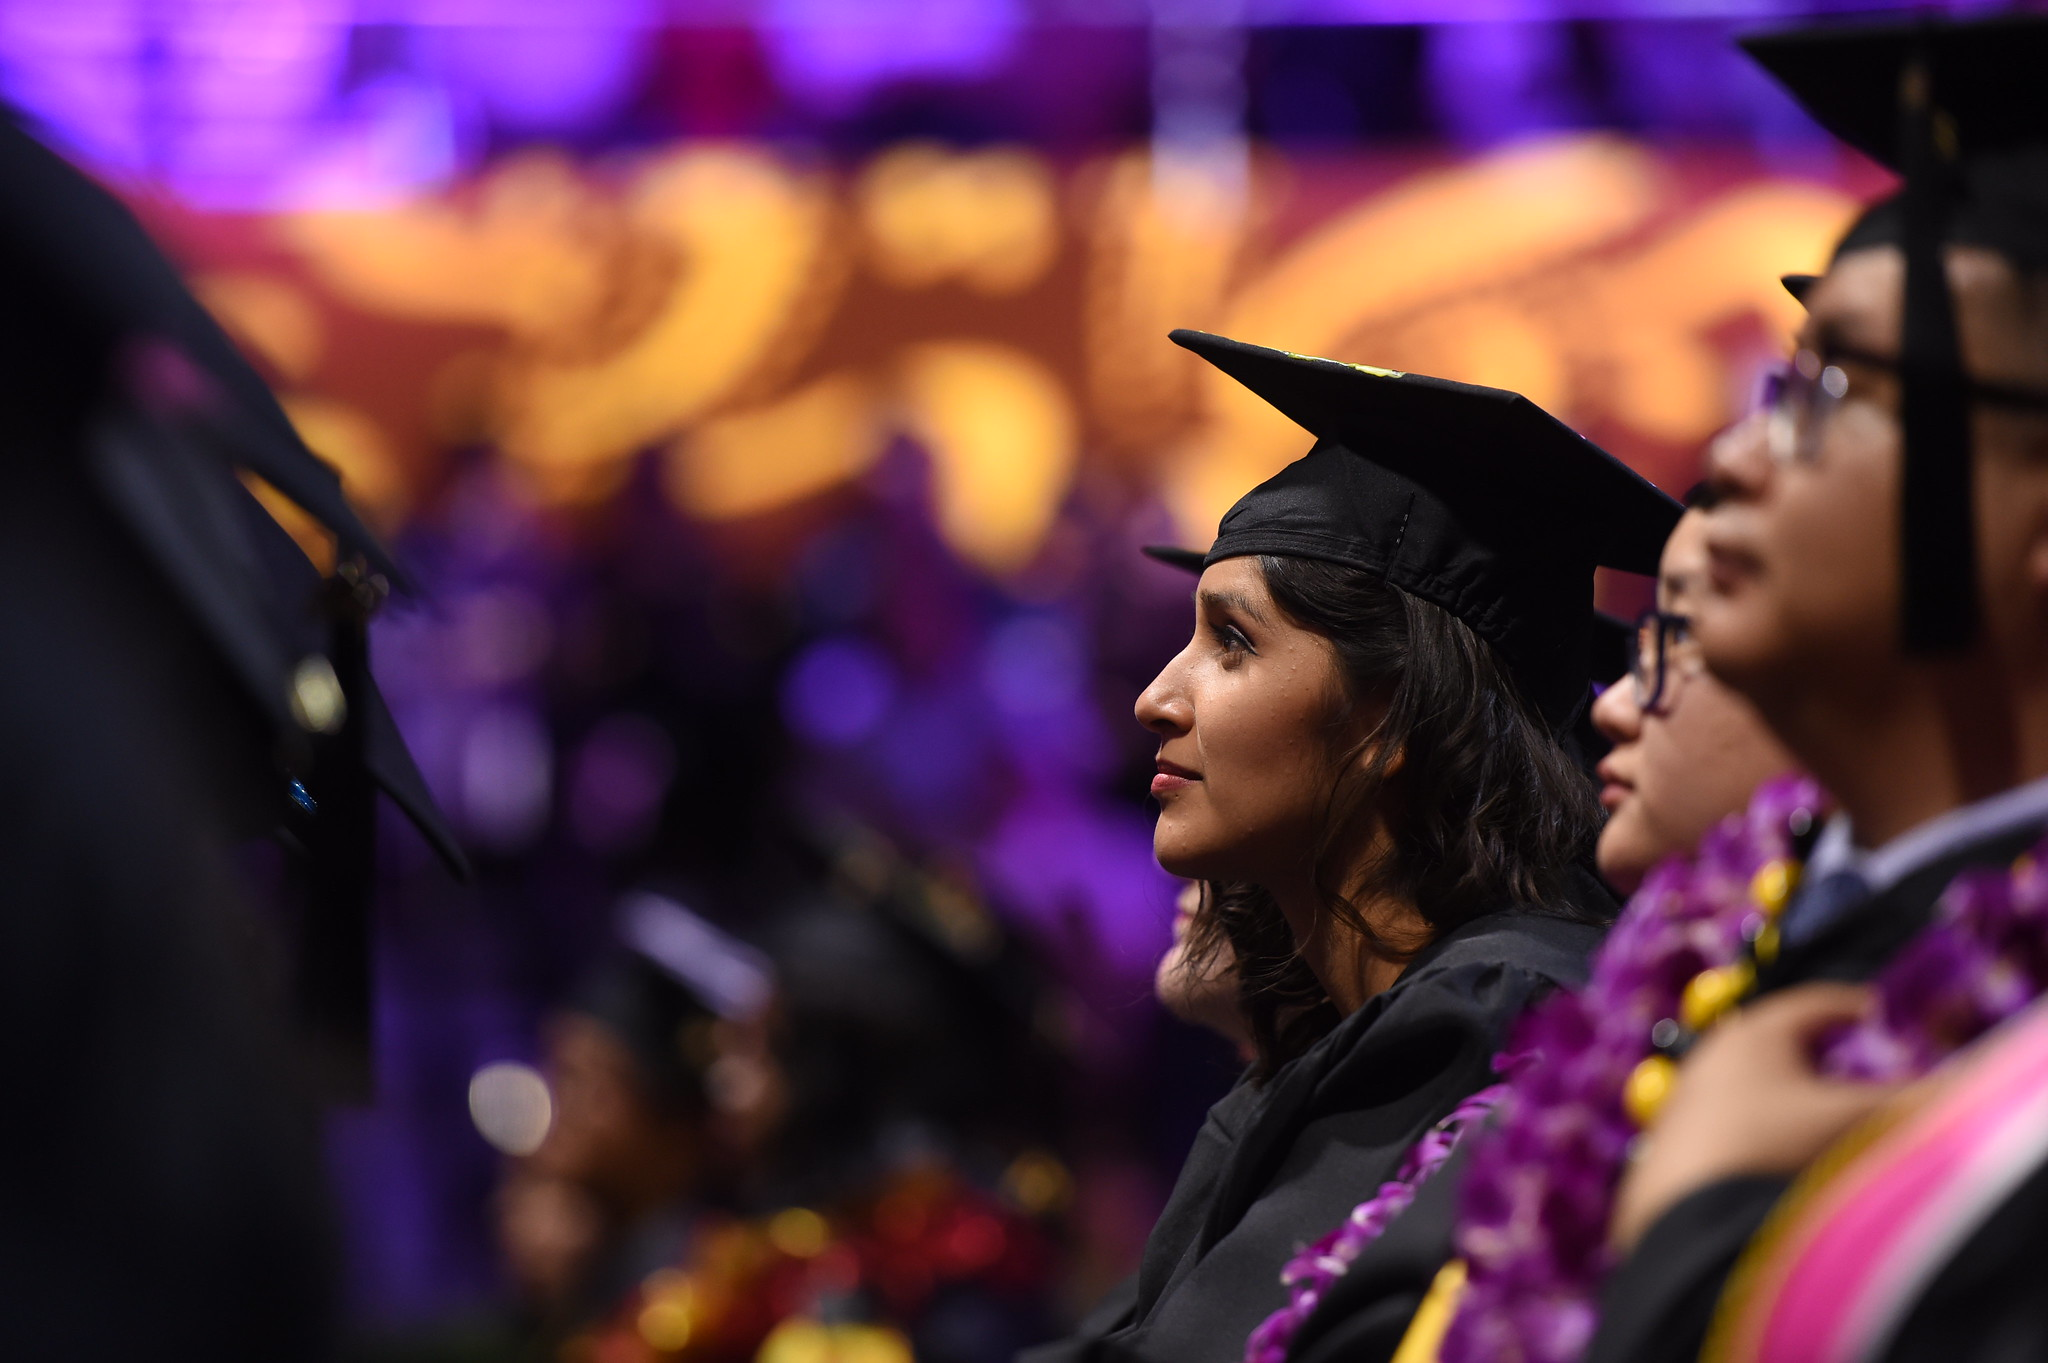 college graduate sitting during commencement ceremony